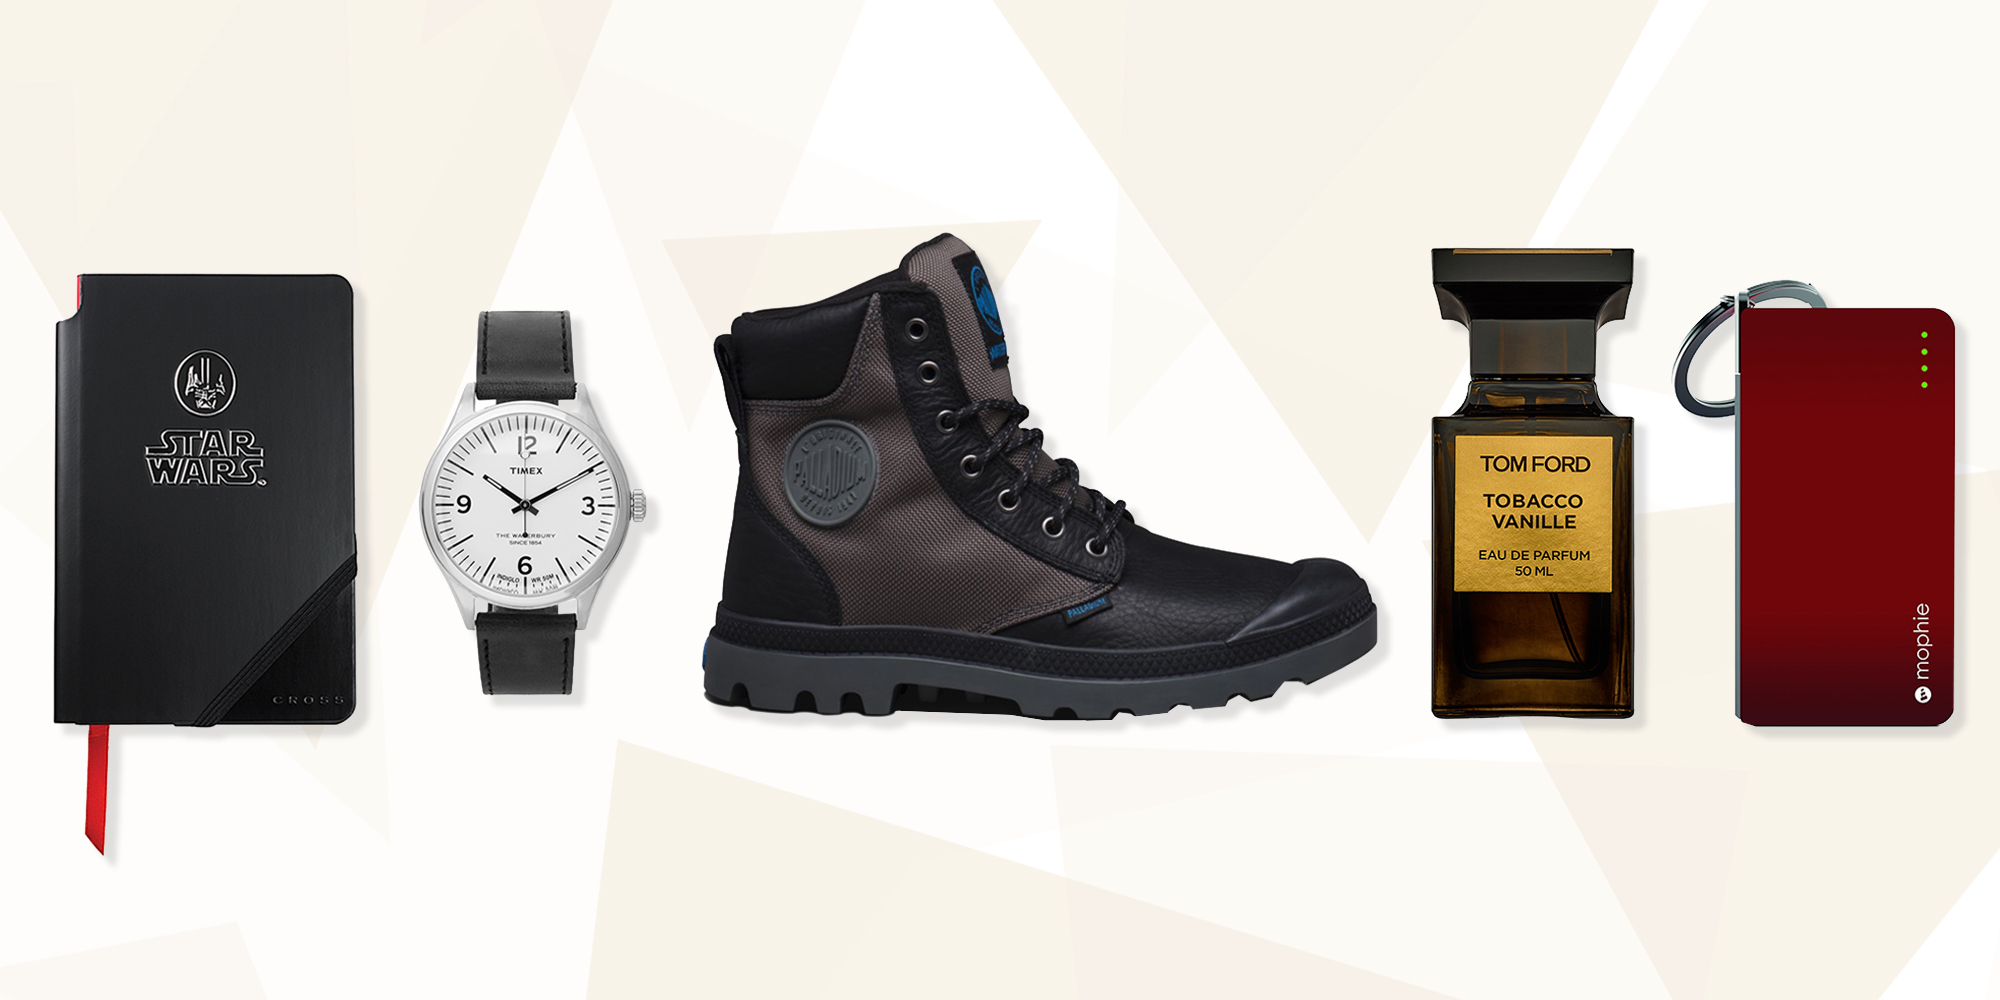 18 Best Birthday Gifts for Him in 2017 - Awesome Gift ...